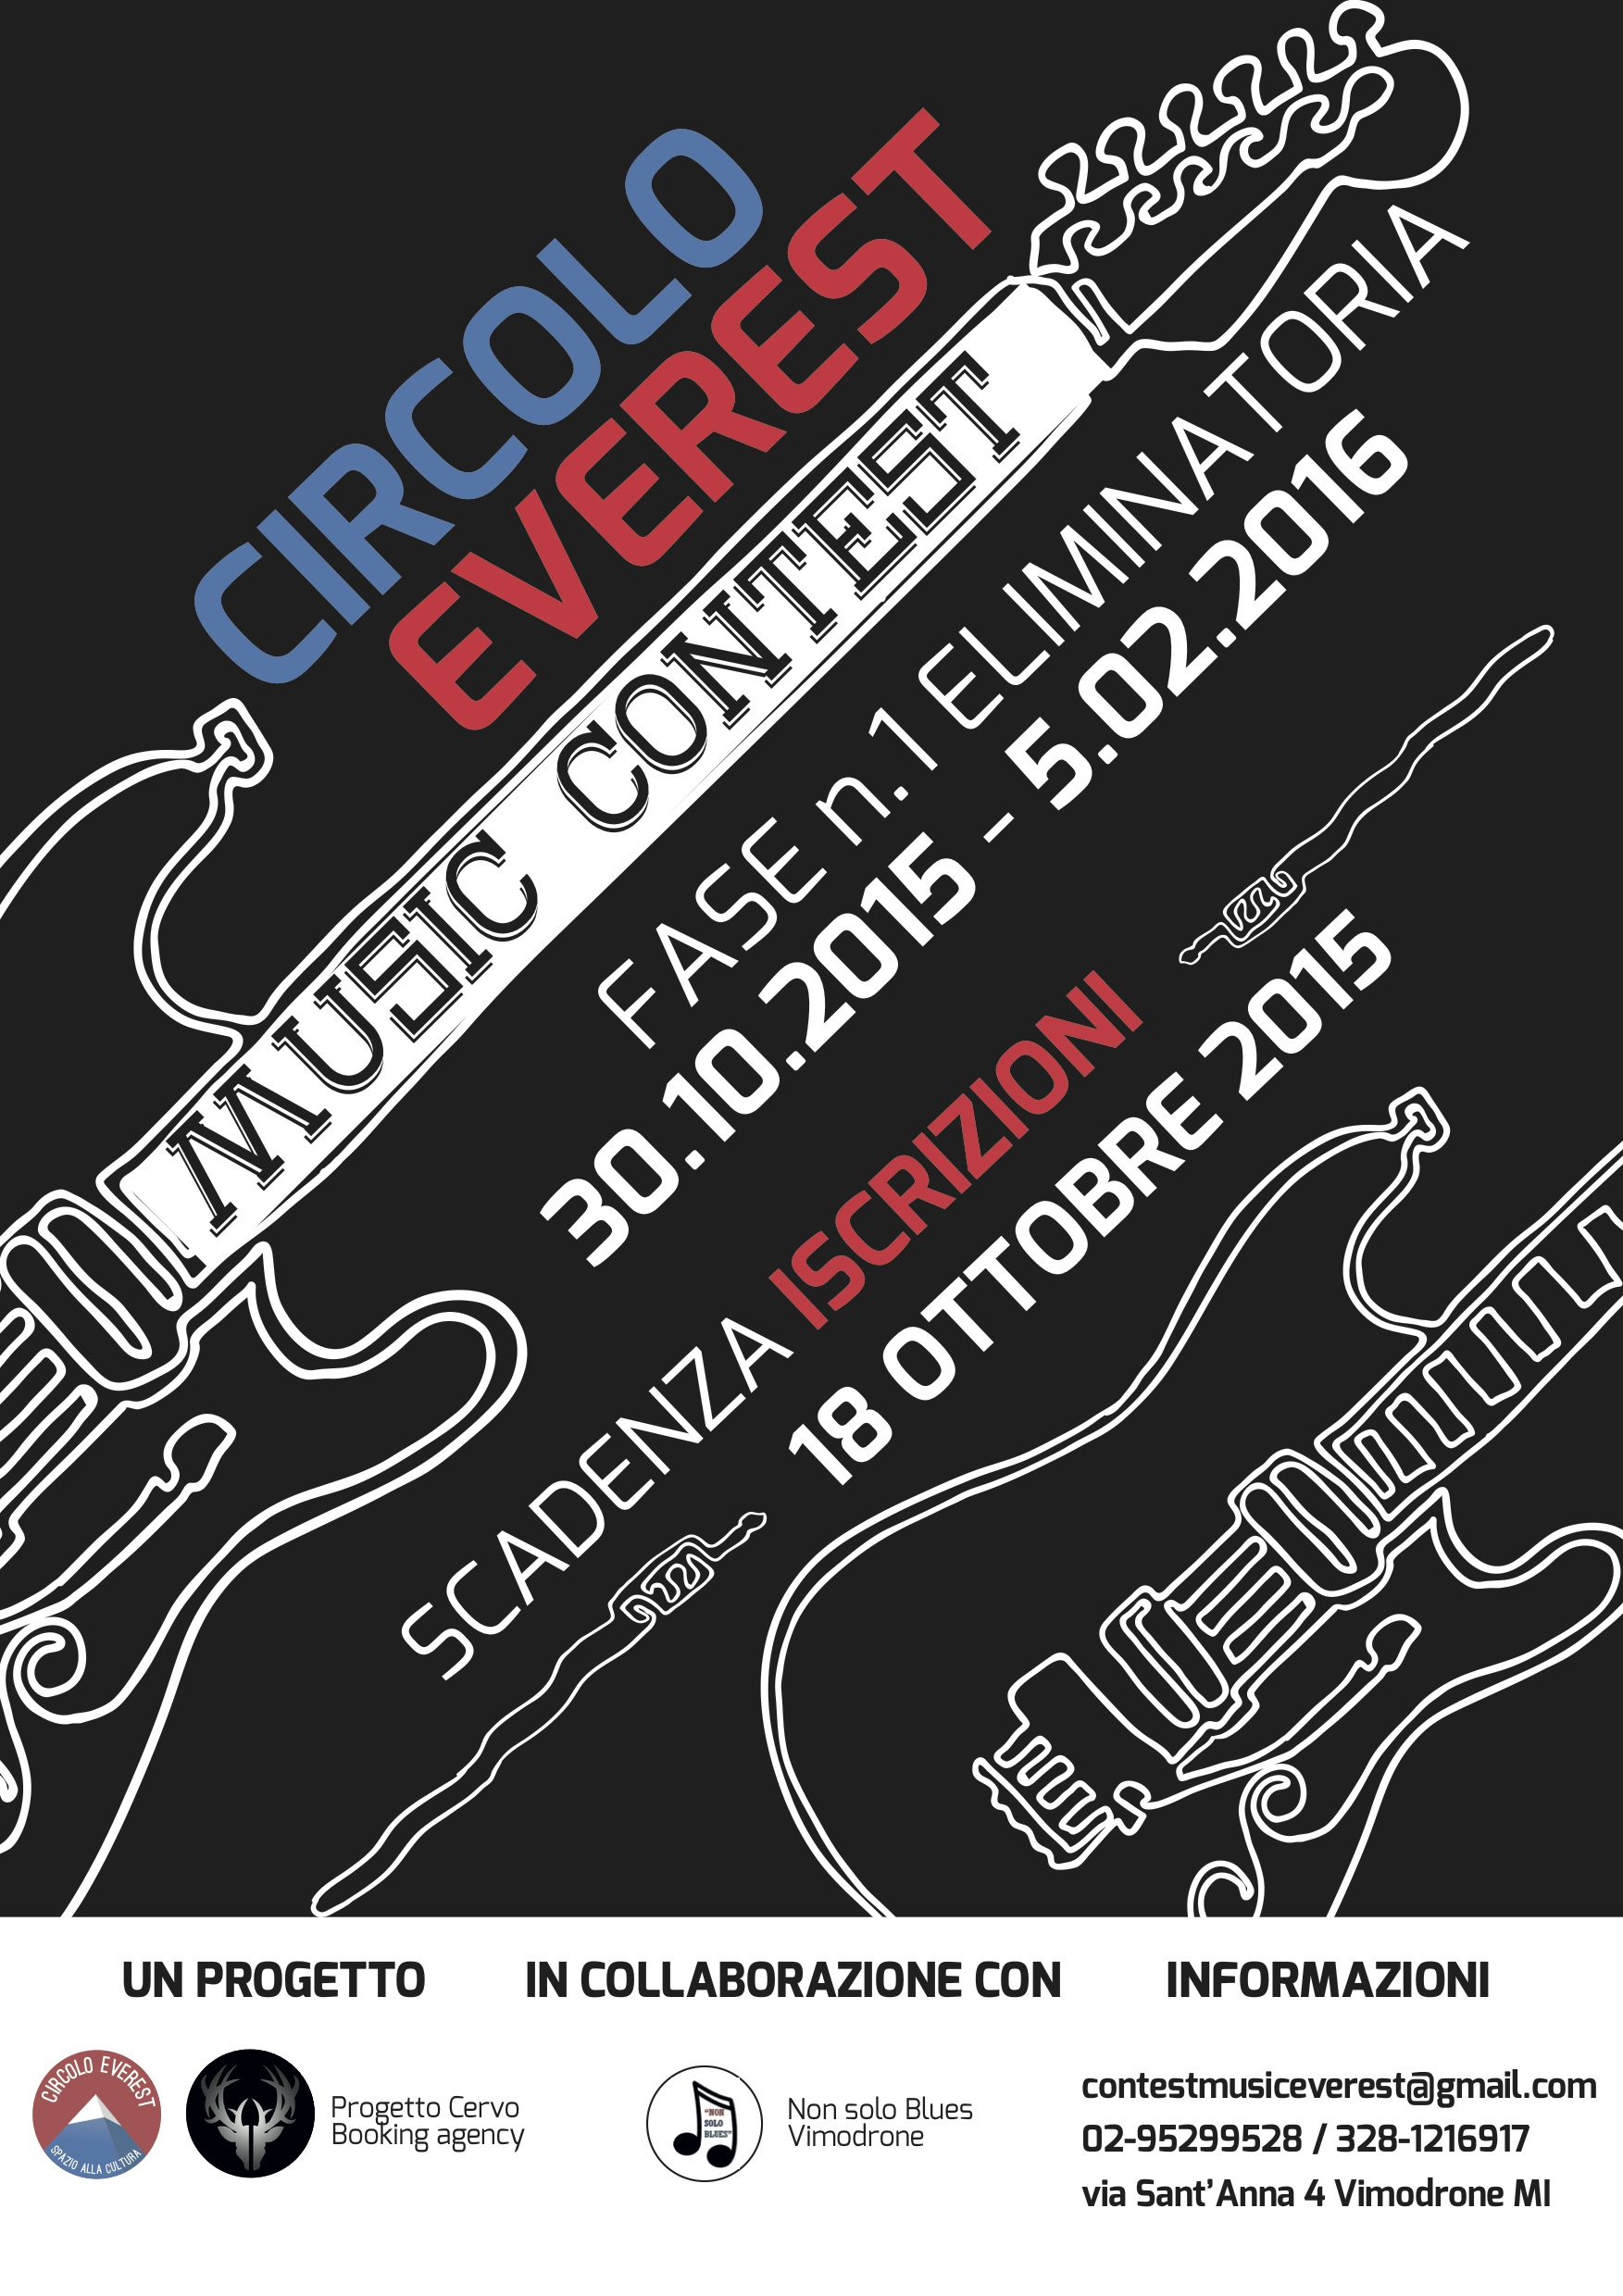 Circolo Everest Music Contest